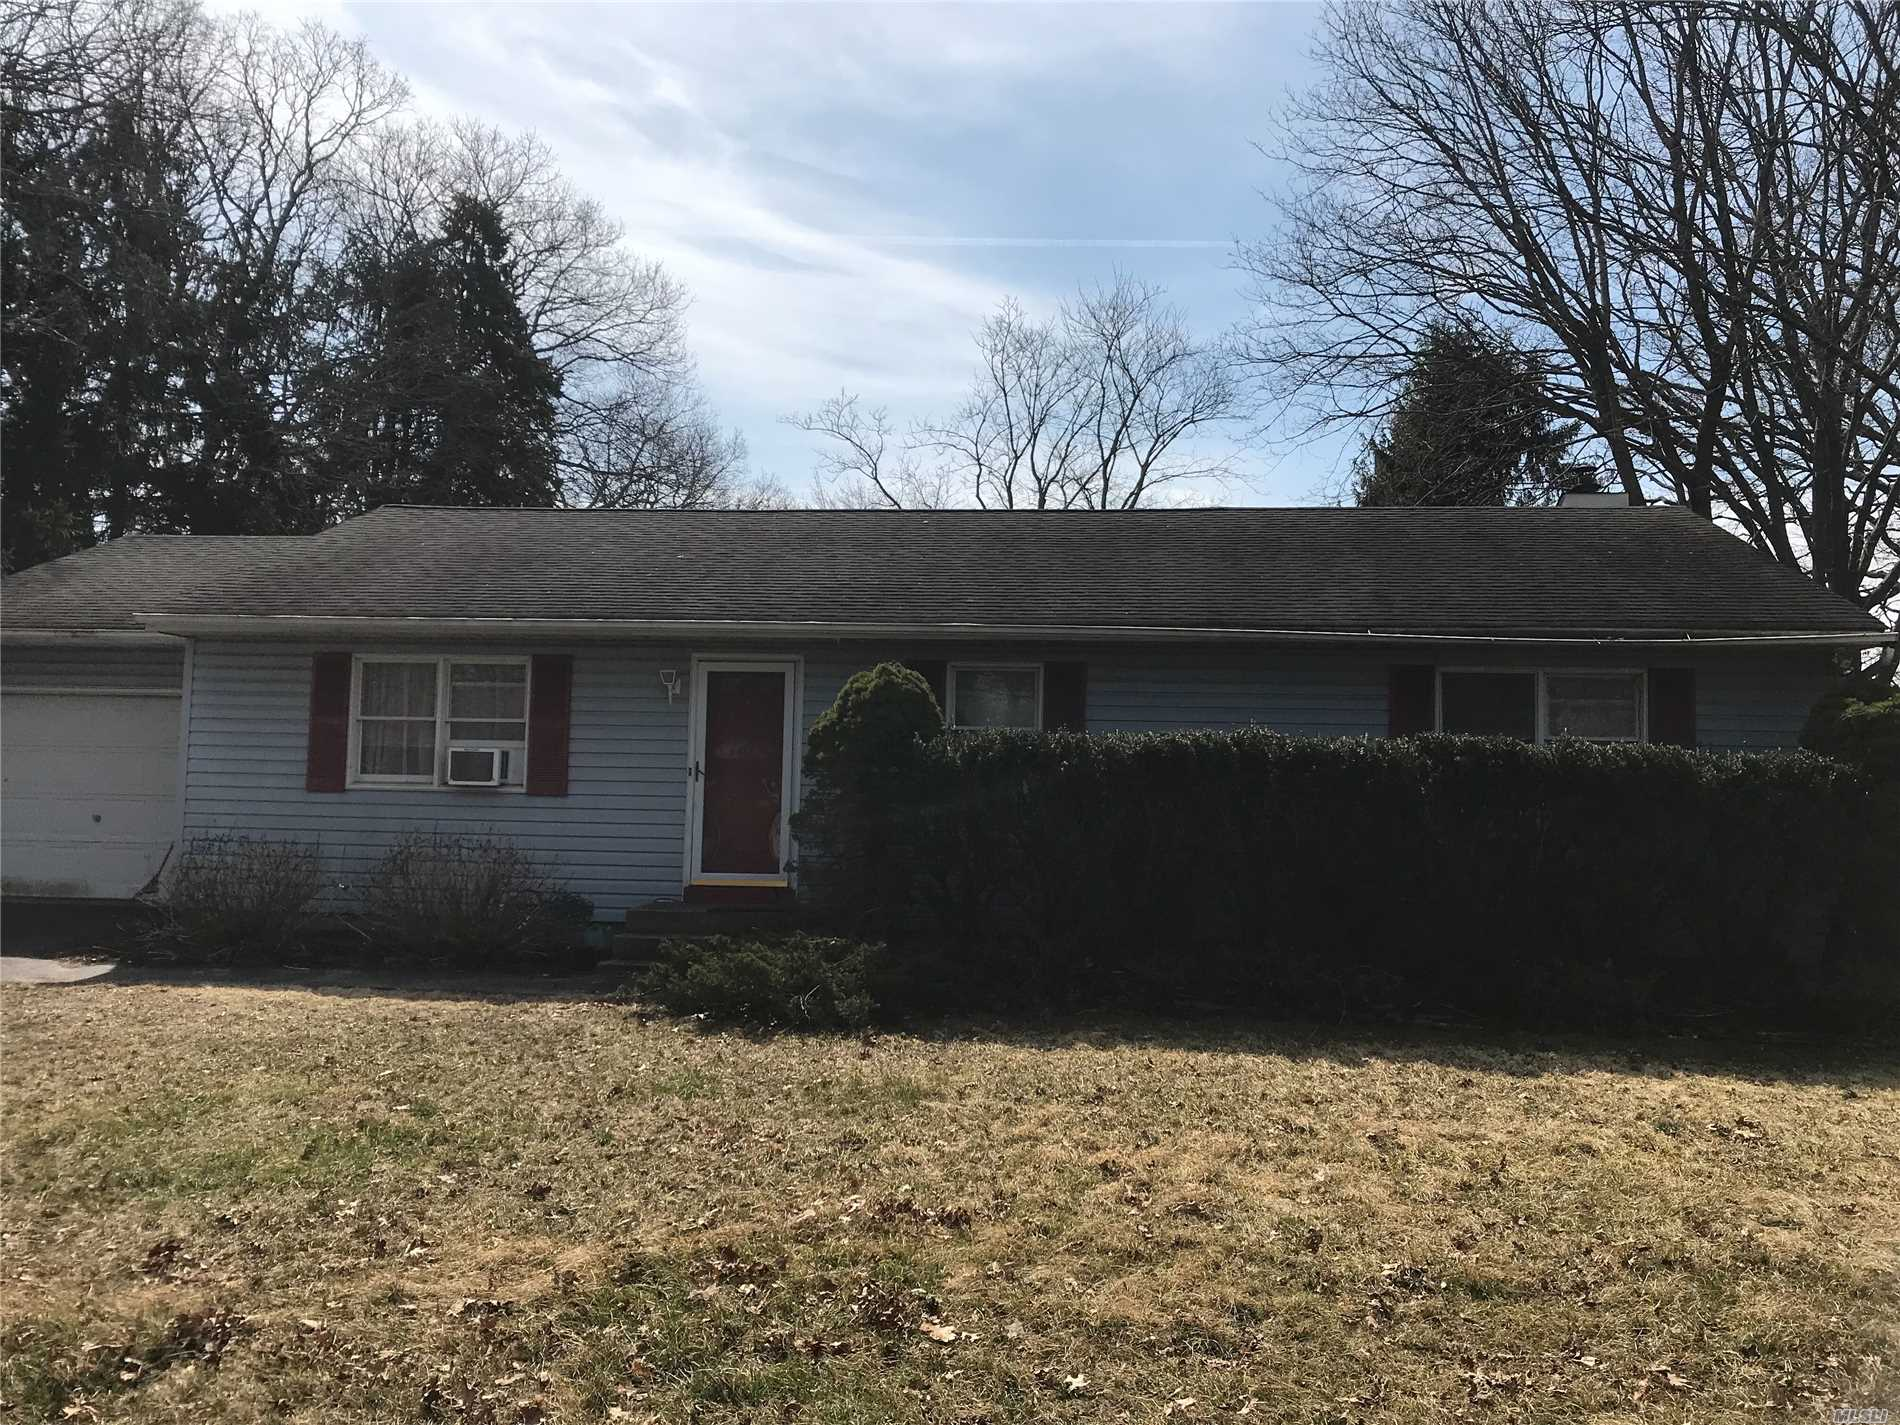 Excellent Opportunity To Purchase A Great 3-Bedroom Home. Don't let the looks be deceiving great flowing home large rooms. Roof 8 yrs old.